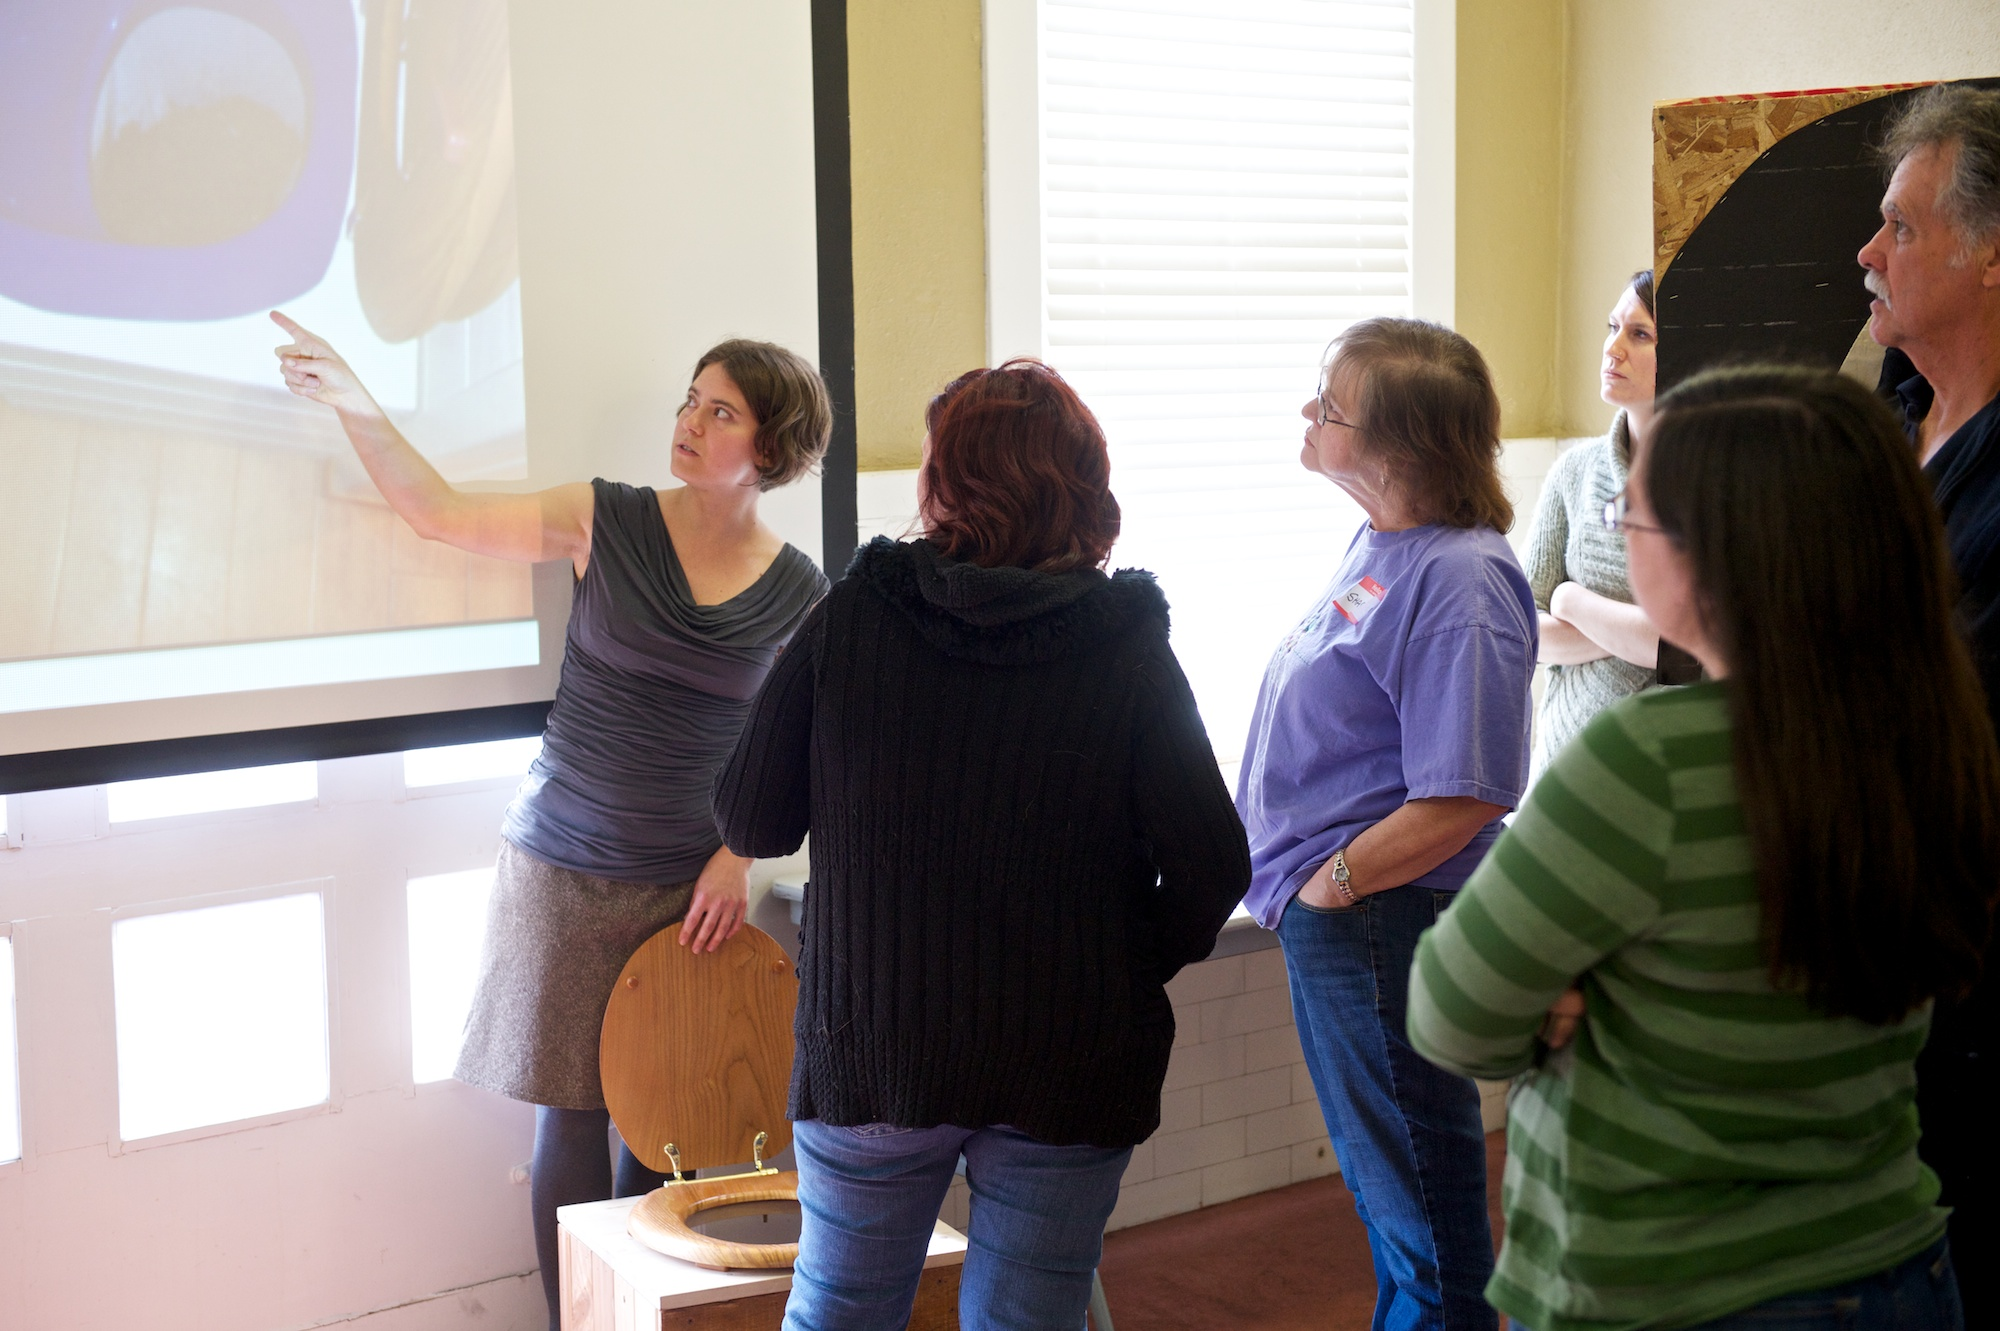 Lina doing a little potty talk as she educates on how to properly work with your composting toilet system.